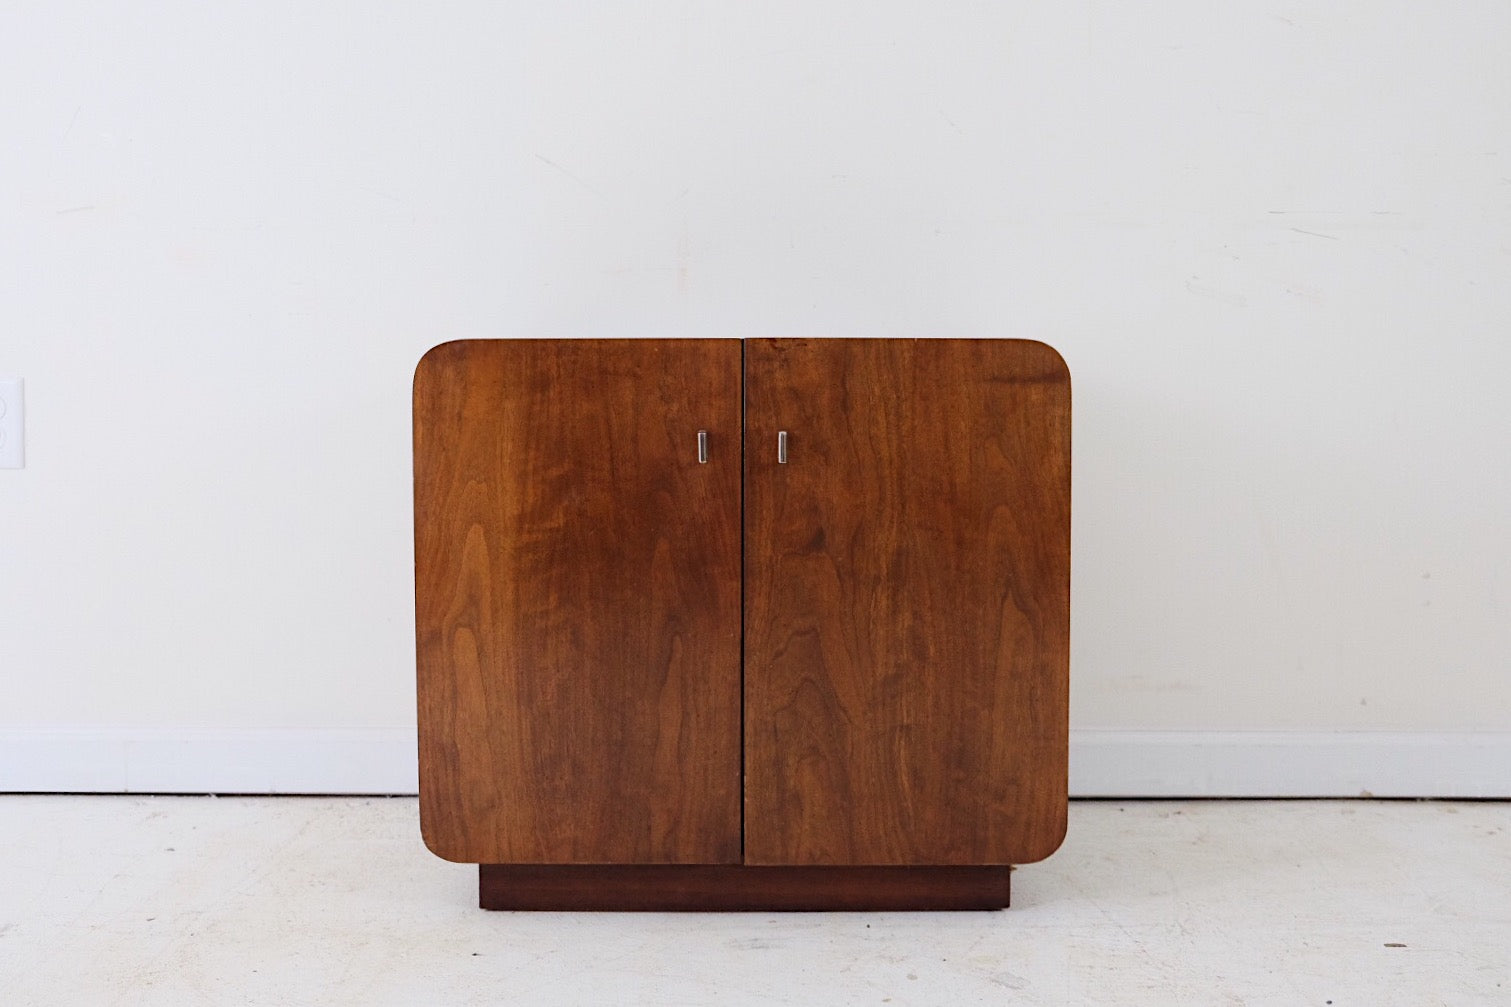 Founders Furniture End Table Side Table Media Cabinet Mid Century Modern Atomic Glam Minimalistic Zen